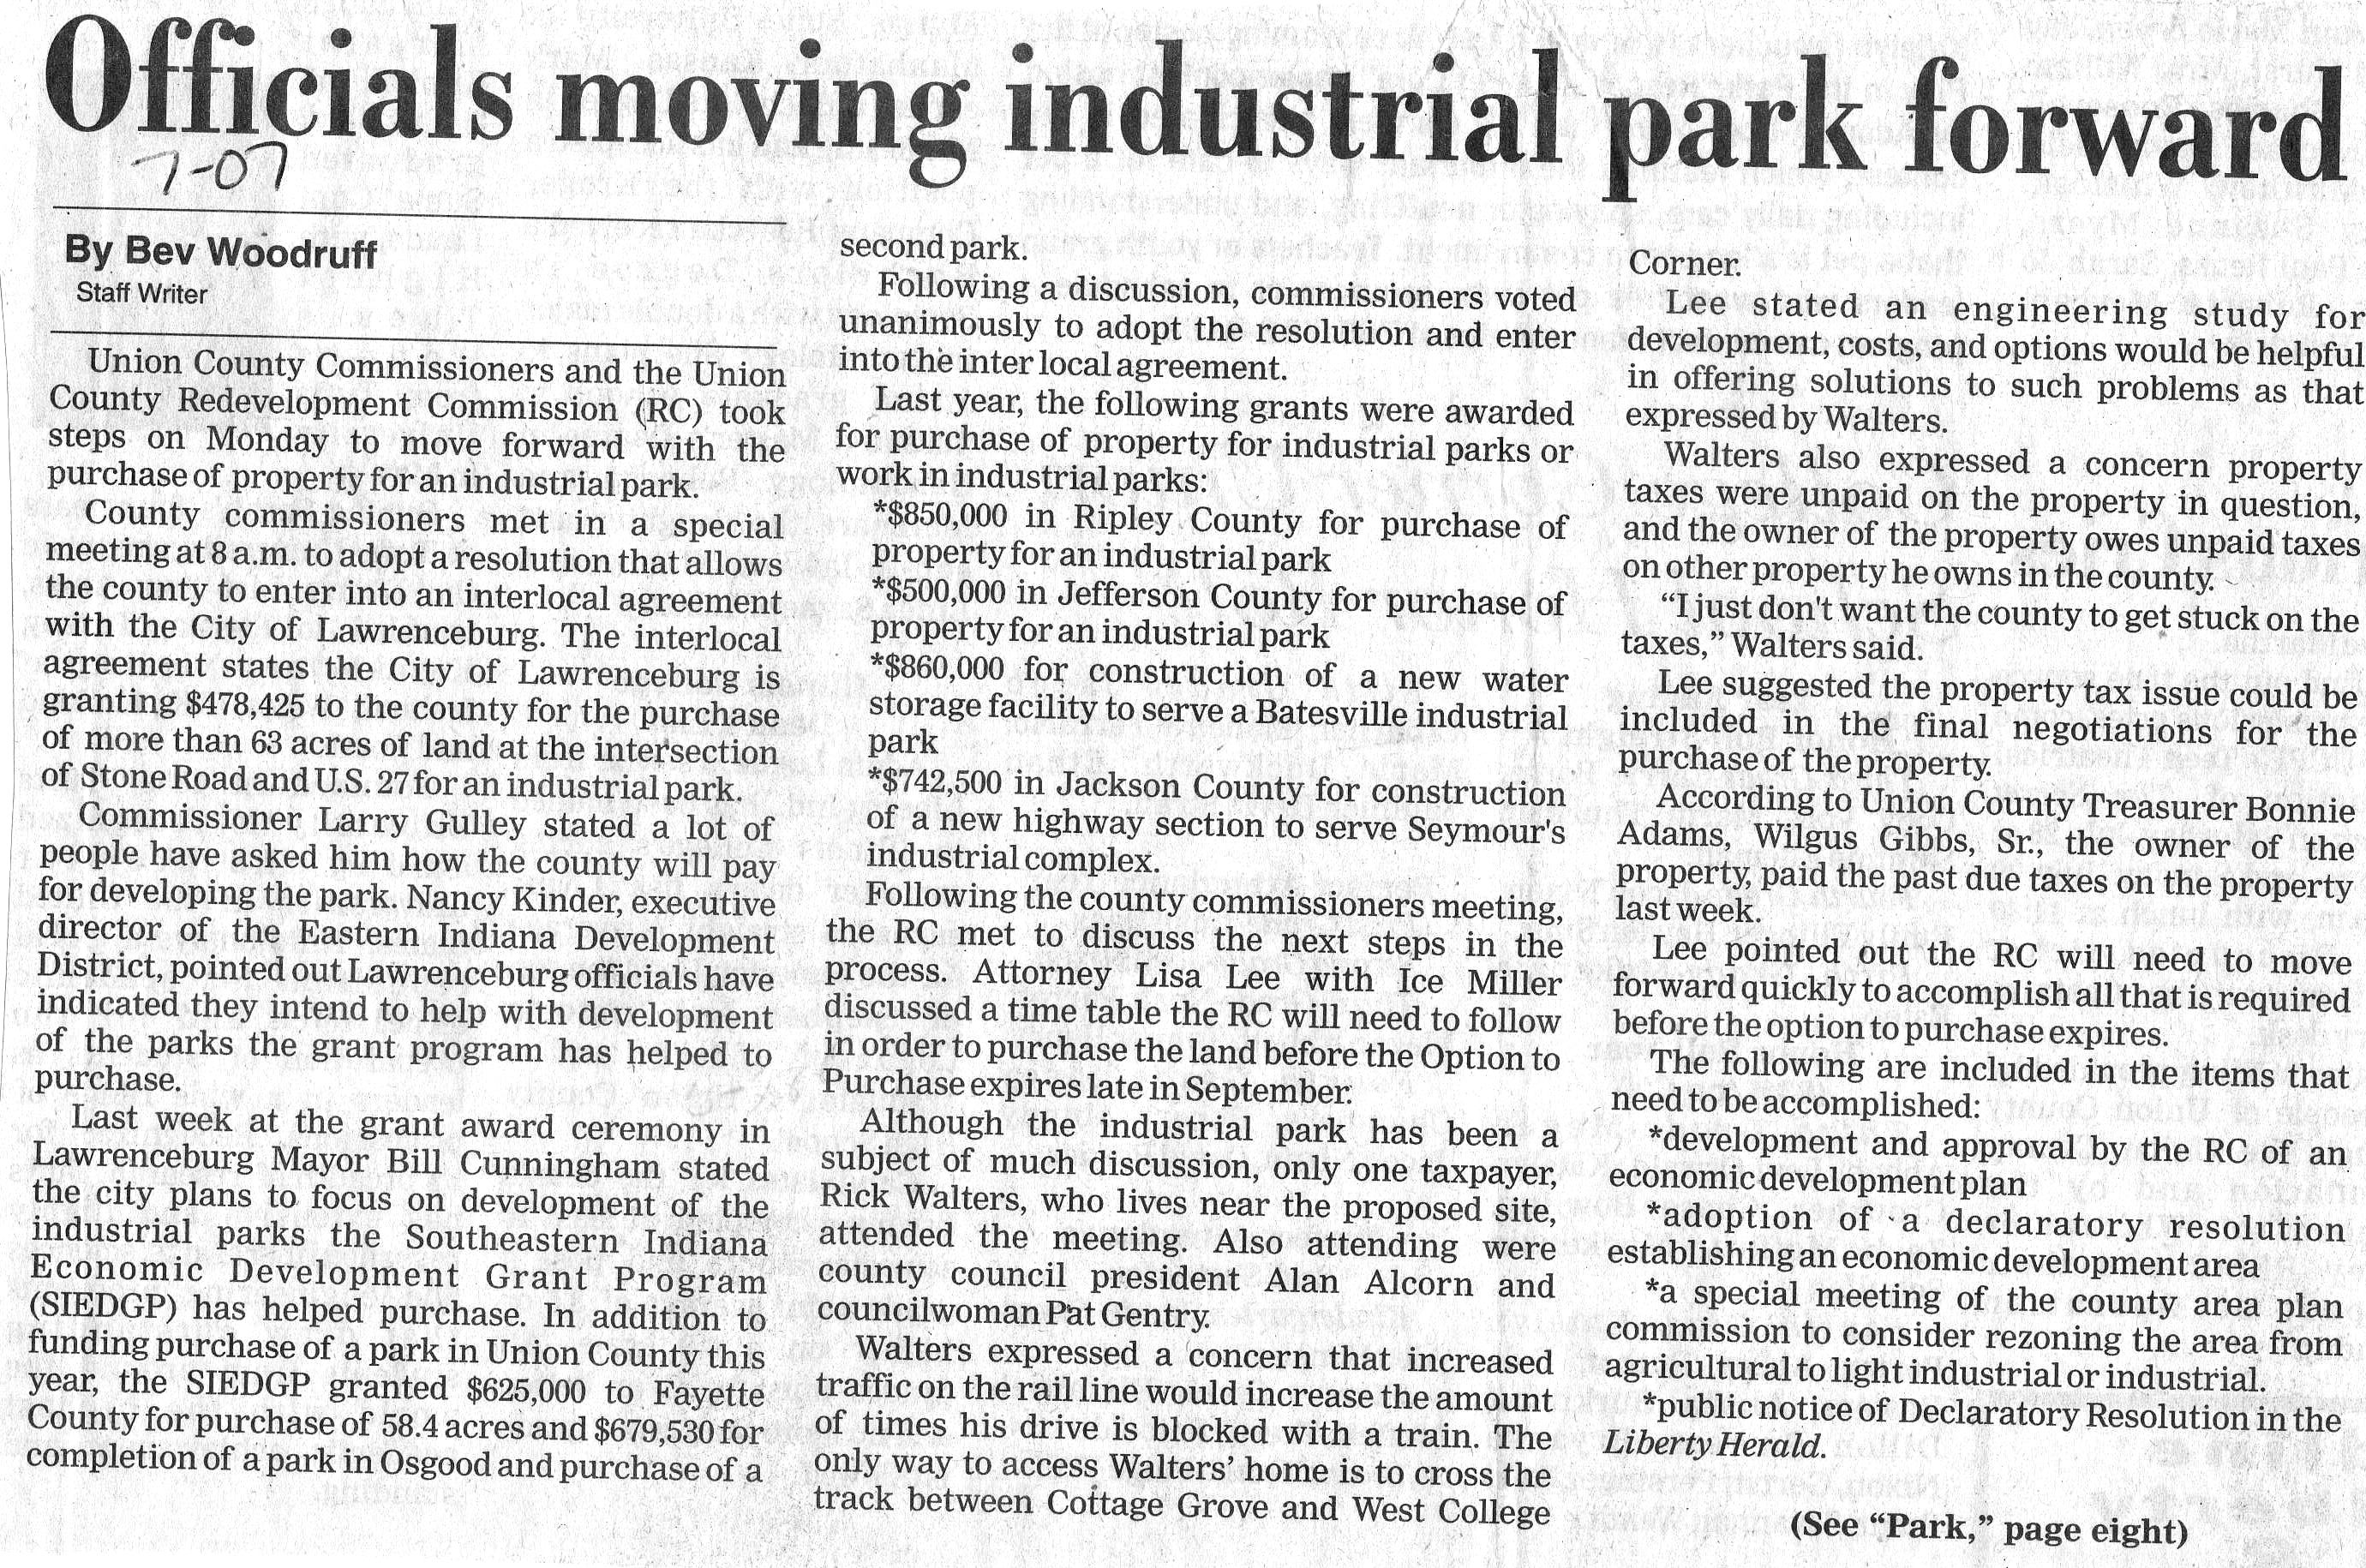 Officials Moving Industrial Park Forward - Liberty Herald July 1, 2007